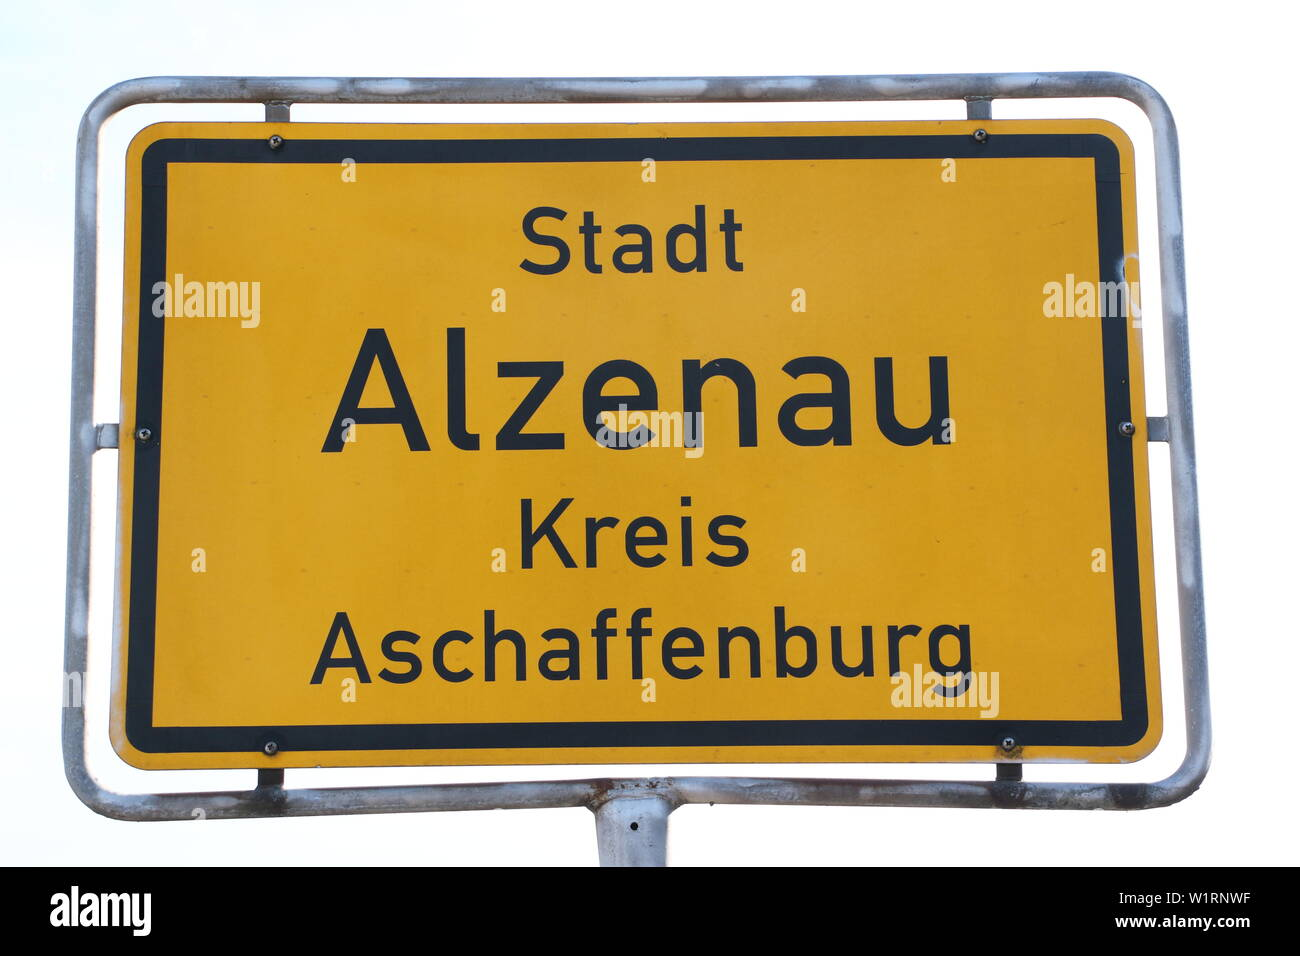 Namensschild der Stadt Alzenau in Bayern Stock Photo